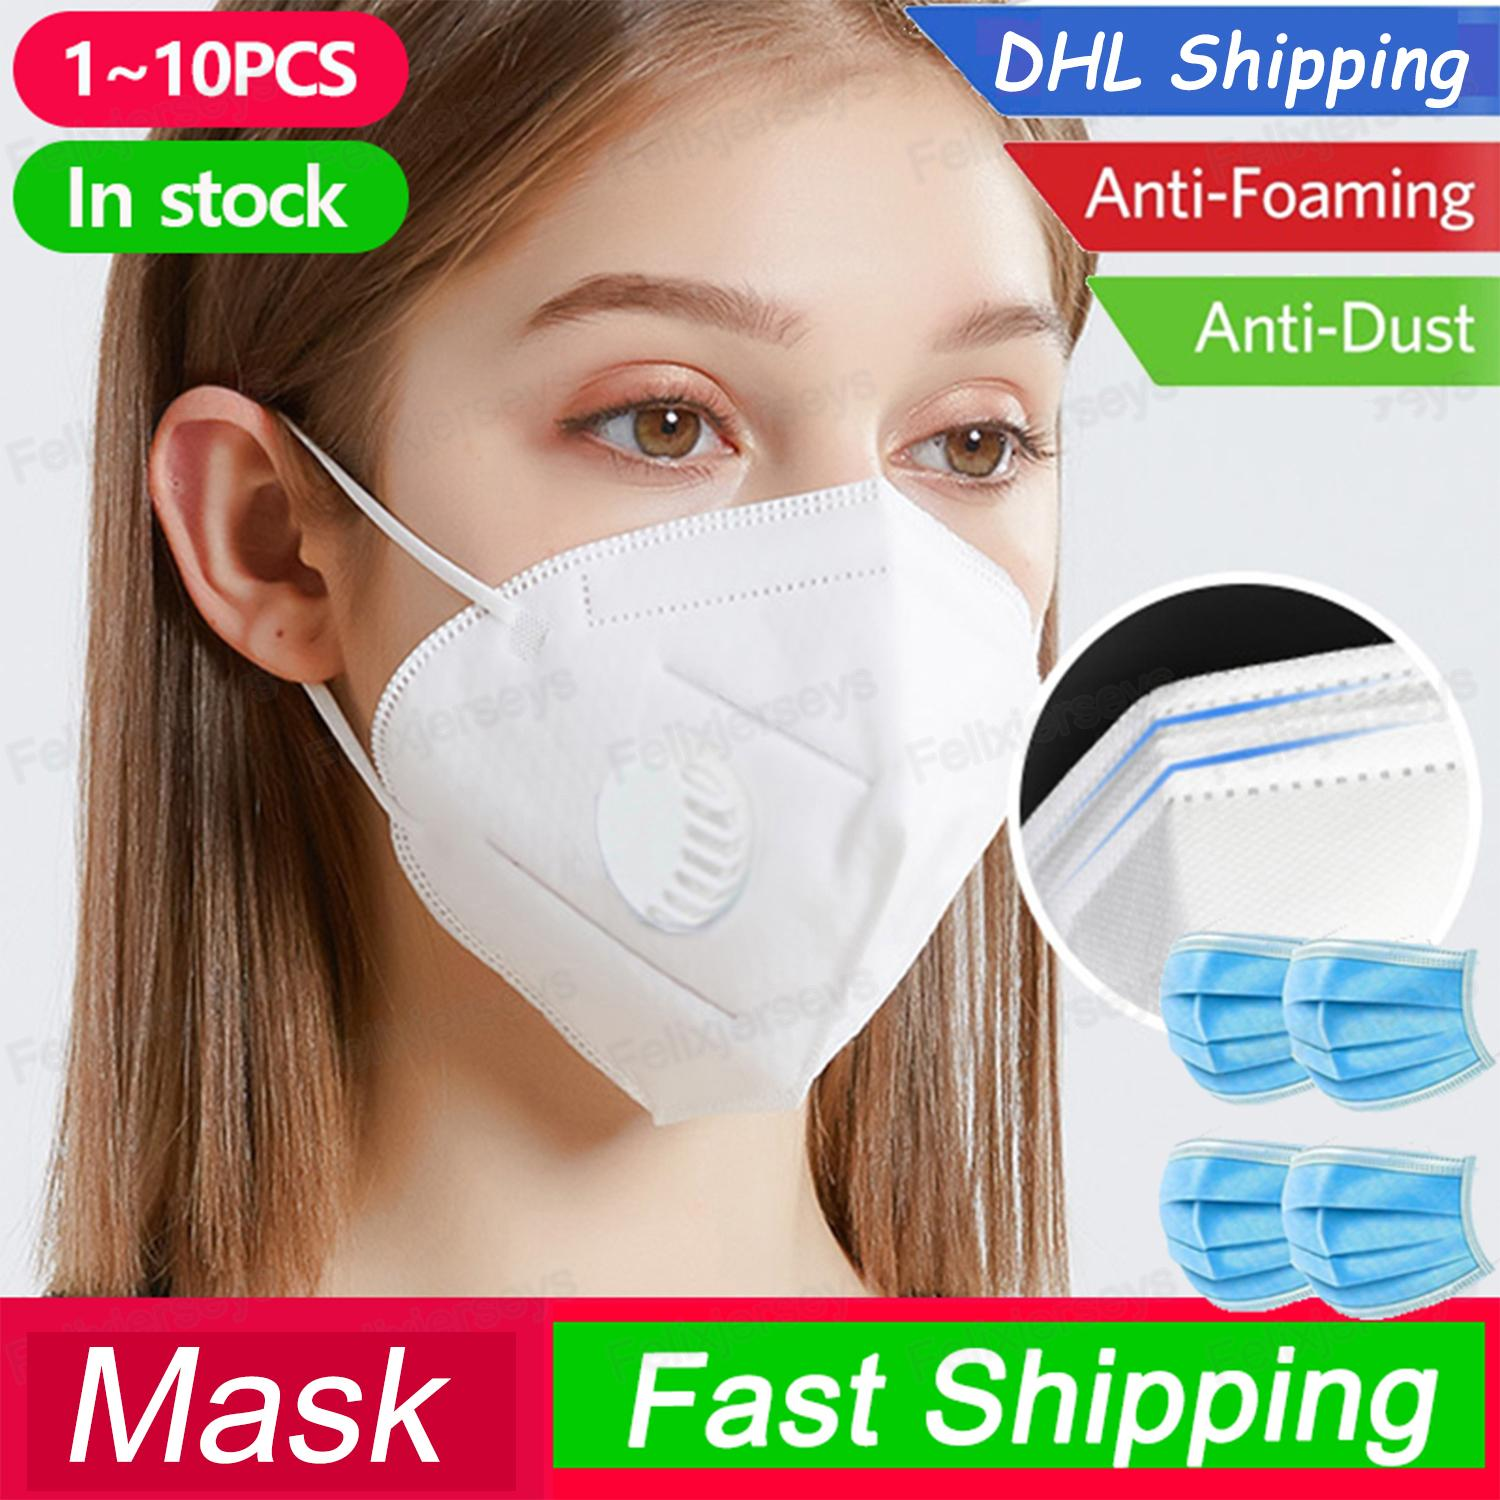 DHL Mask Disposable Face Masks With Activated carbon Filter Respirator Dust Mouth Protective Anti-bacterial Mascherine Mask